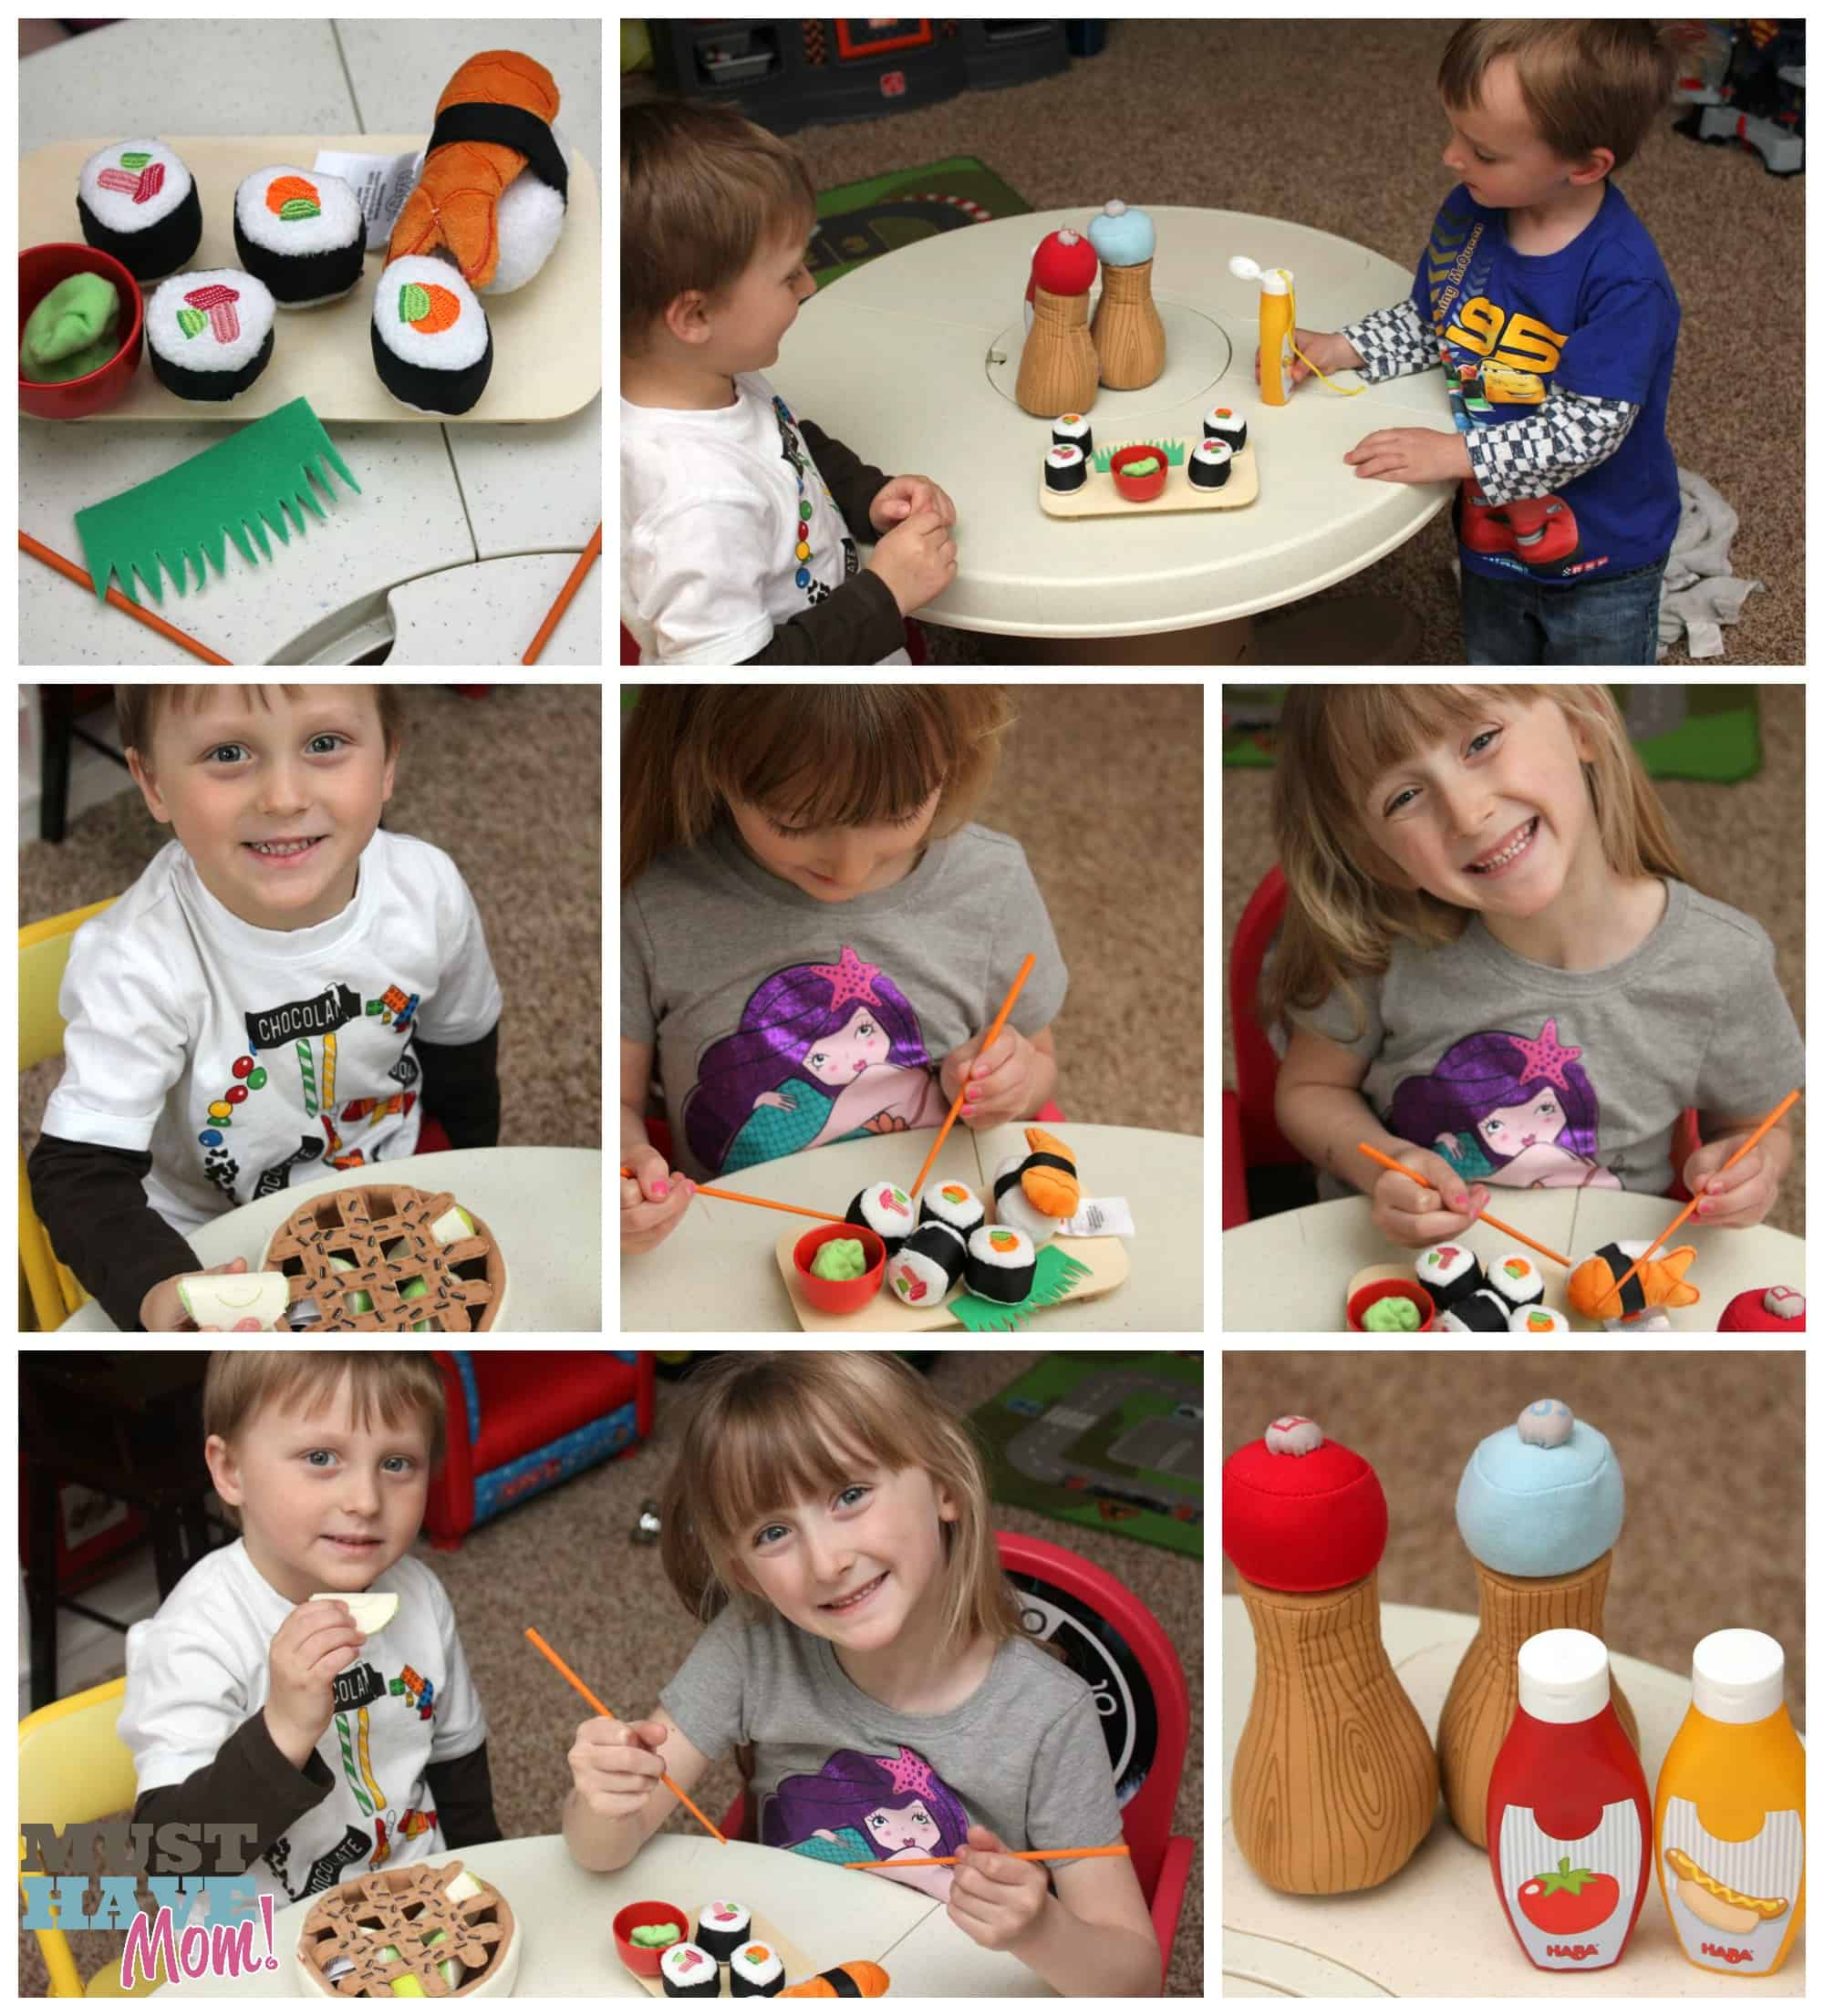 HABA Pretend Food Play - Must Have Mom